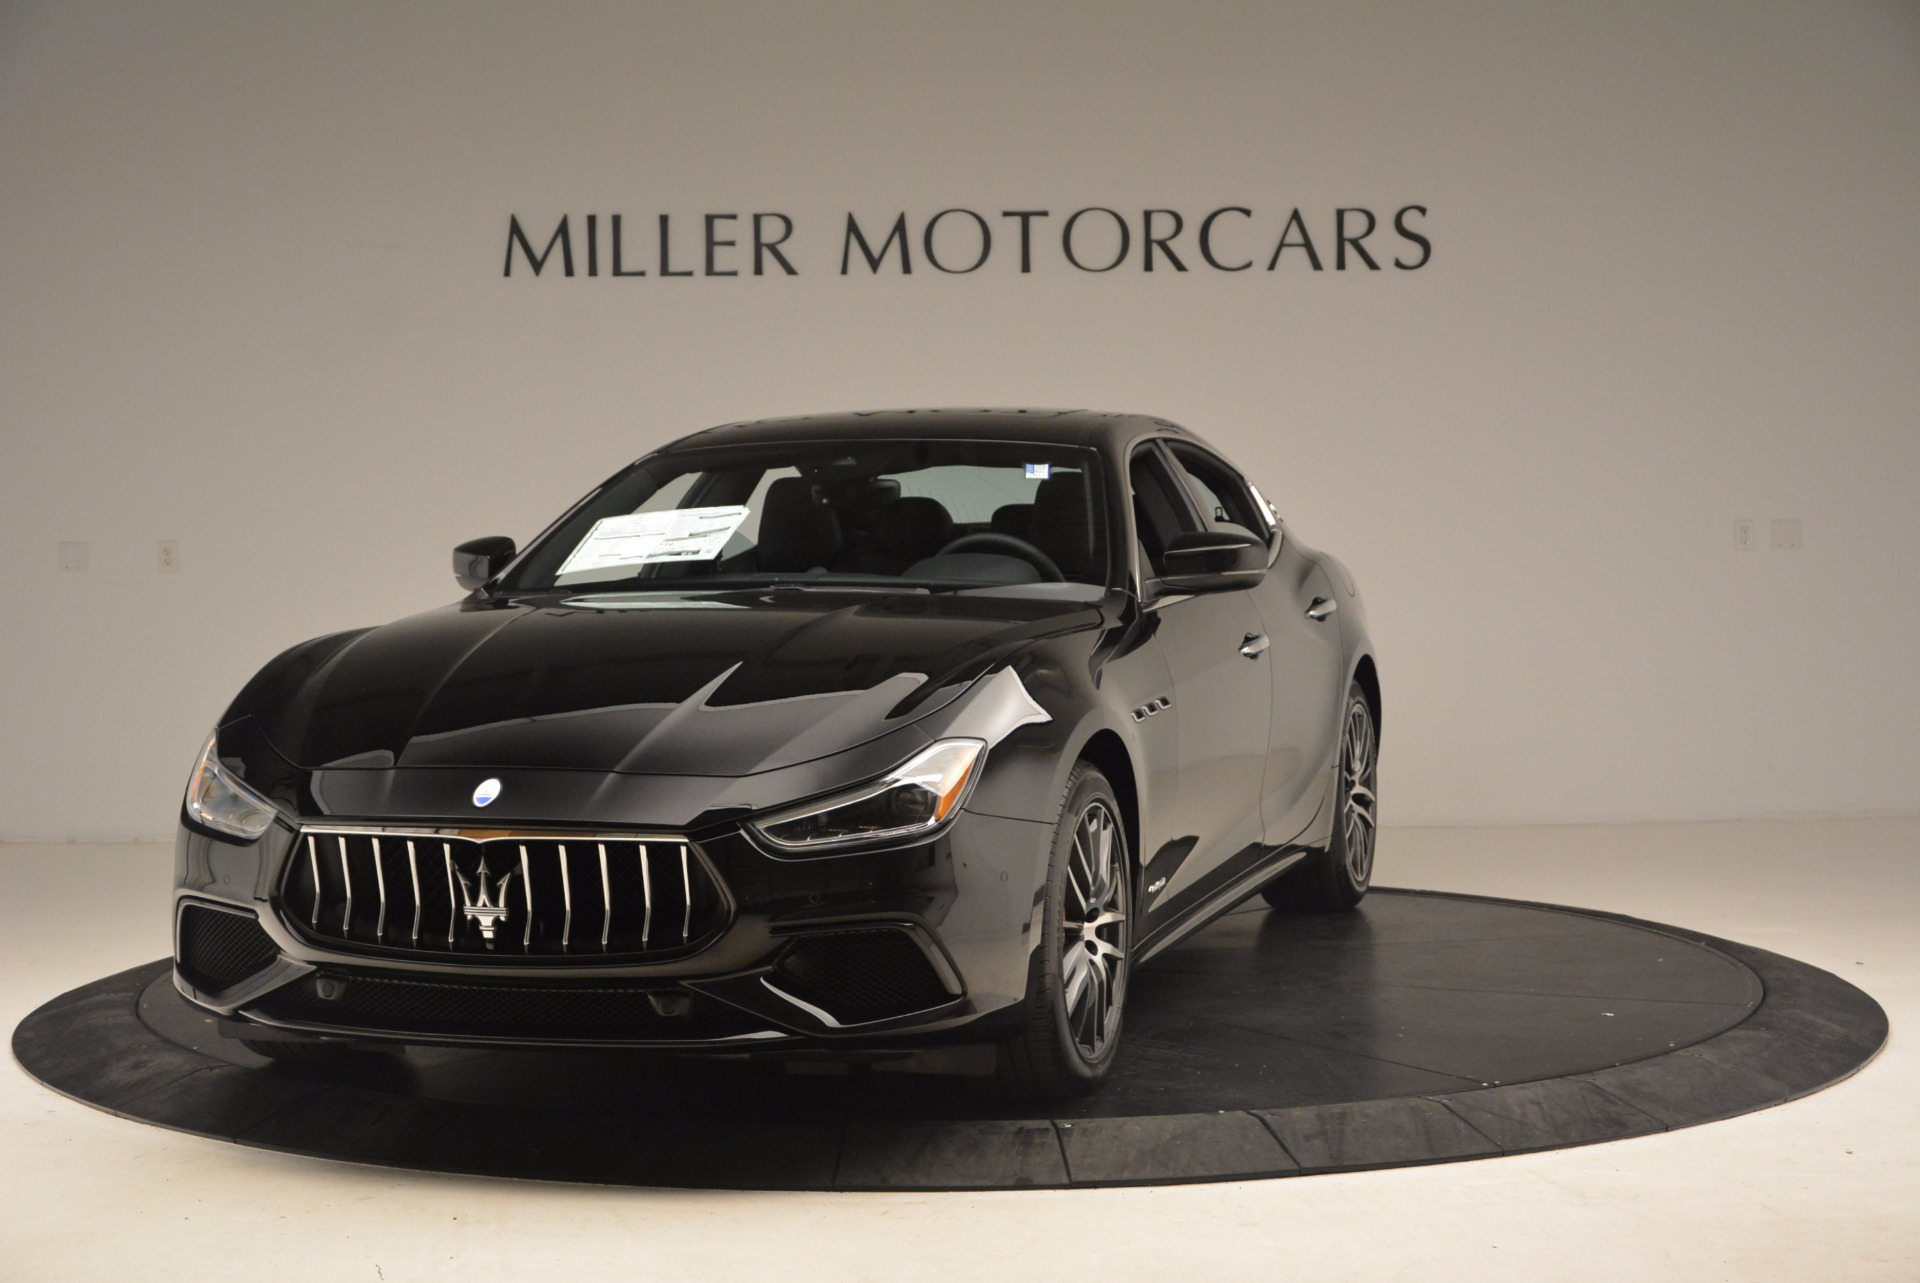 Used 2018 Maserati Ghibli S Q4 Gransport for sale Sold at Pagani of Greenwich in Greenwich CT 06830 1